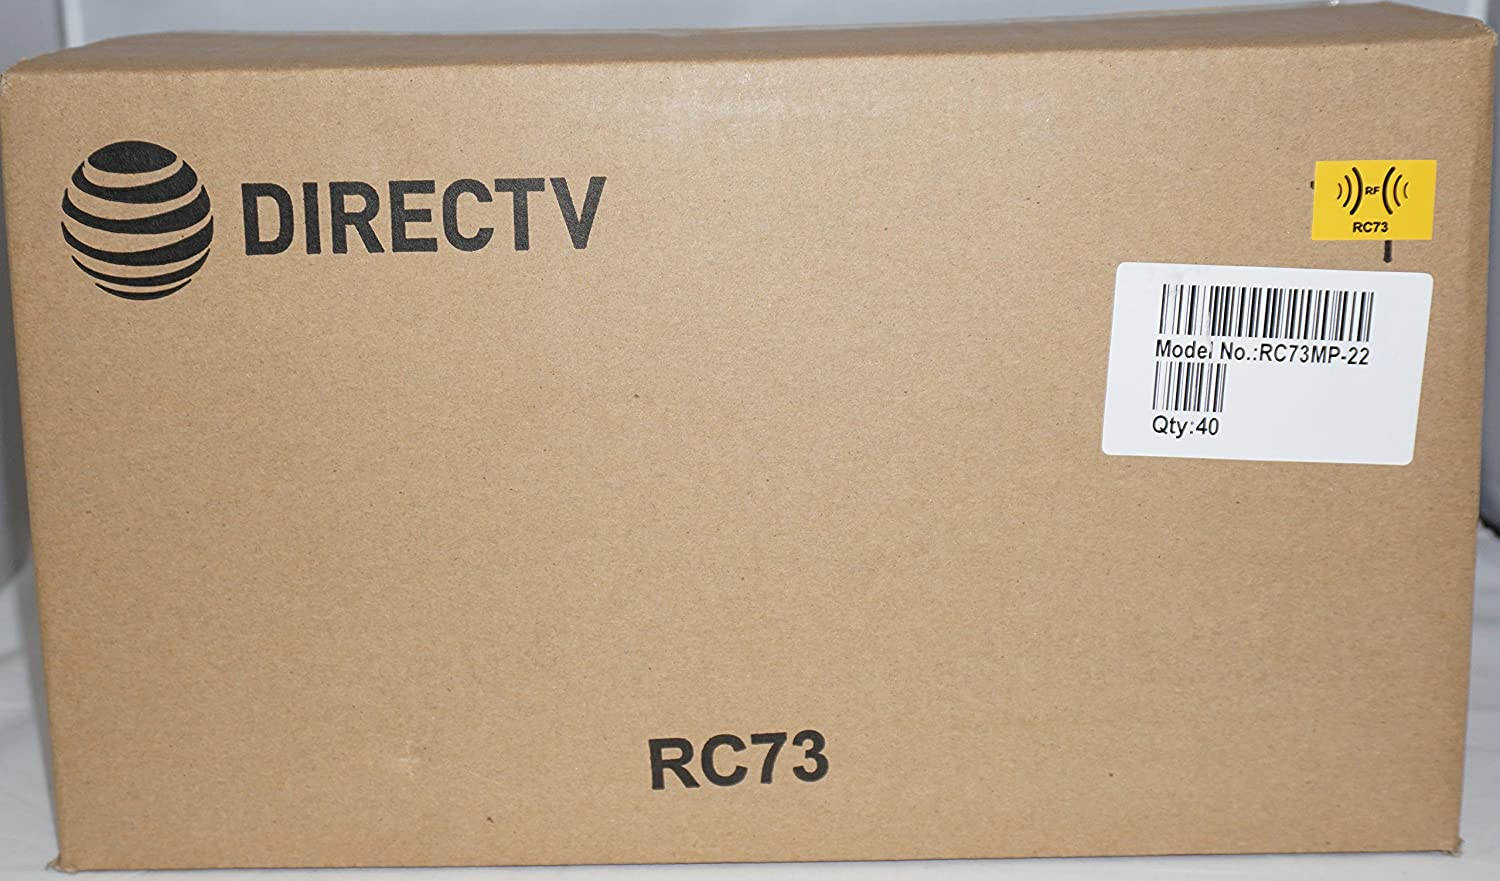 40 Directv Rc73 Ir Rf Remote Control For Genie Hr44 Wireless C41 Diagram Client W Batteries New Home Audio Theater